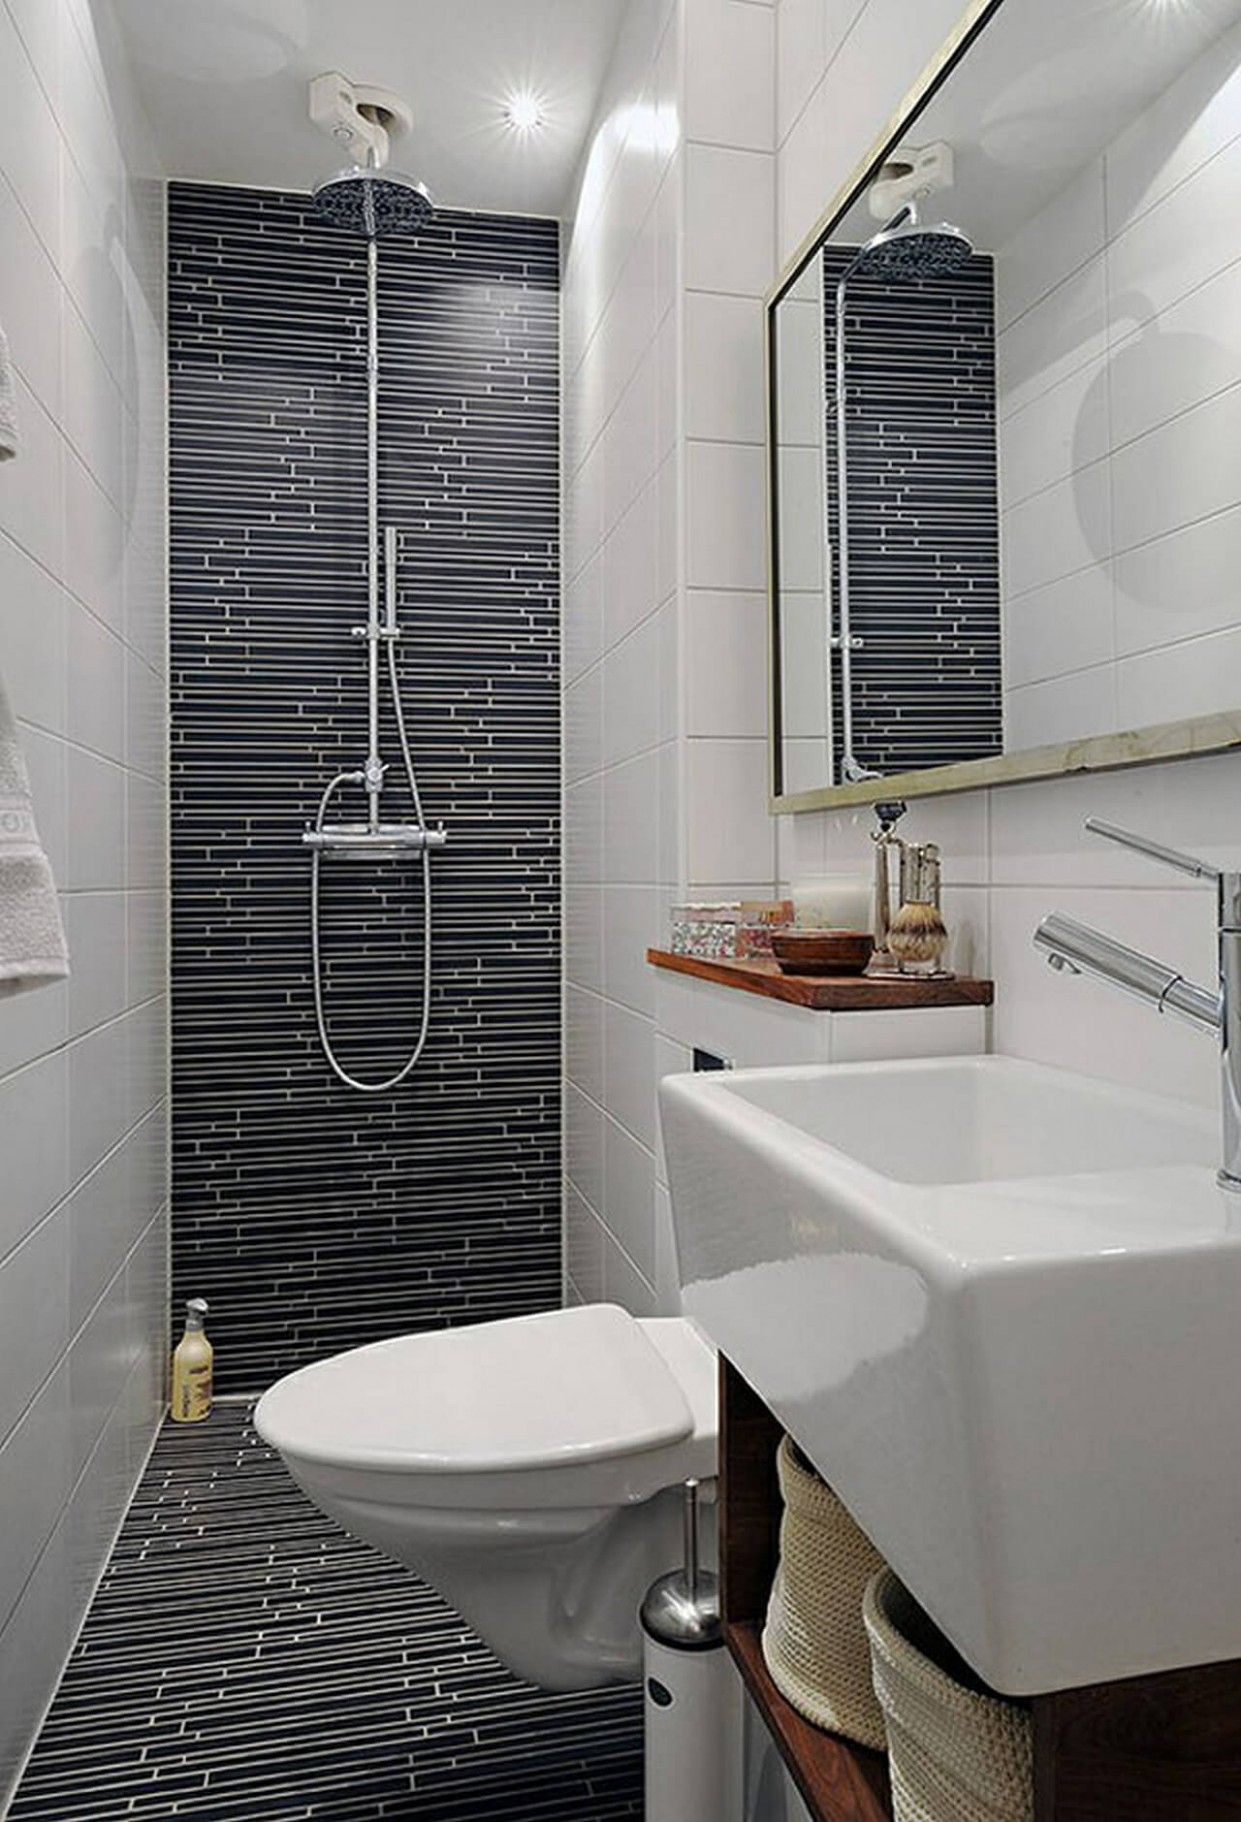 Ten Features Of Modern Design Of Small Bathroom That Make Everyone Love It Di 2020 Desain Ide Kamar Mandi Kamar Mandi